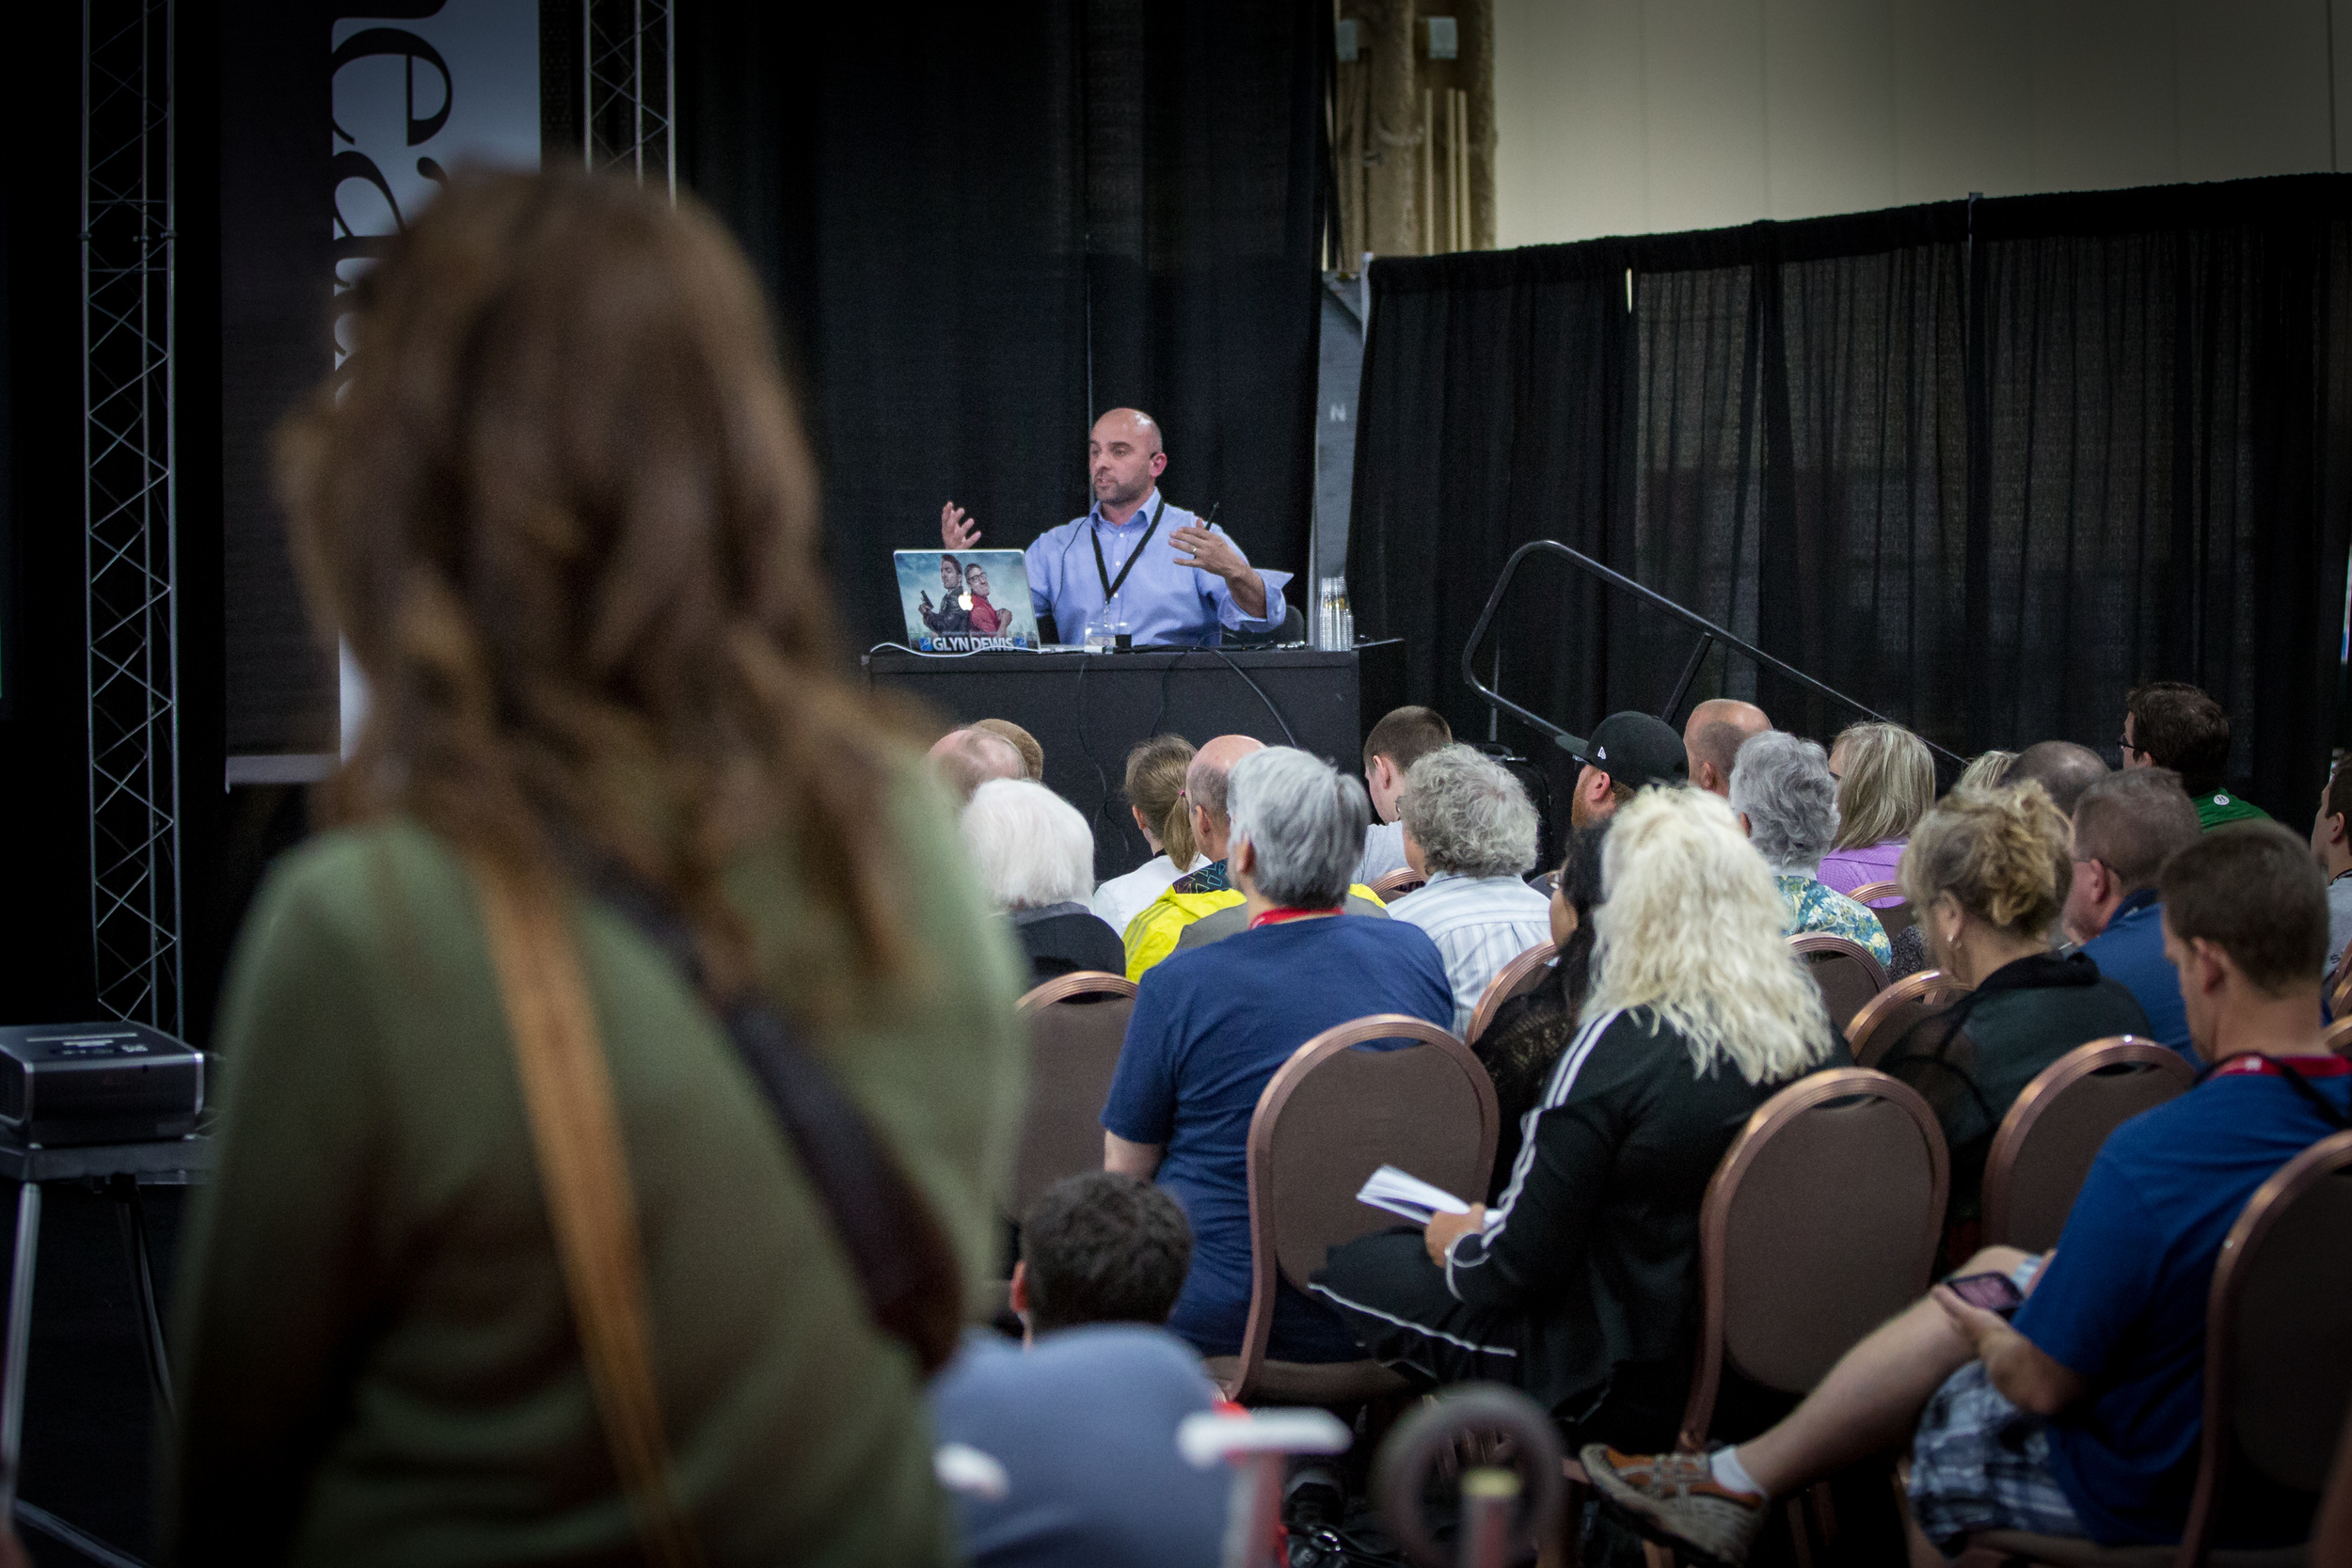 Glyn Dewis lecturing in the Expo Hall.